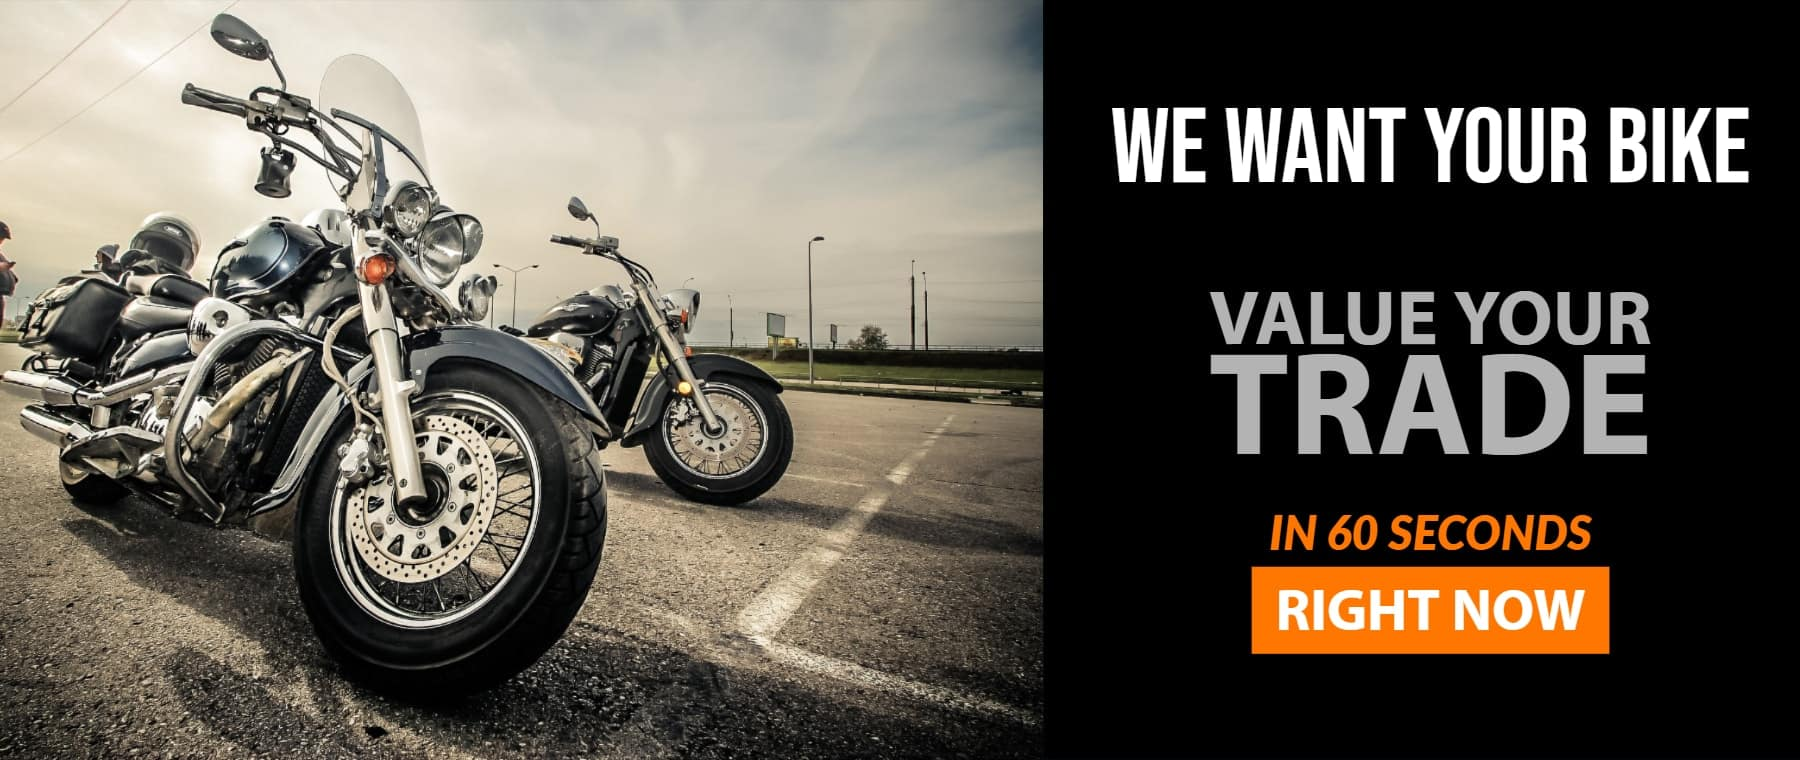 Value Your Trade Bike Banner